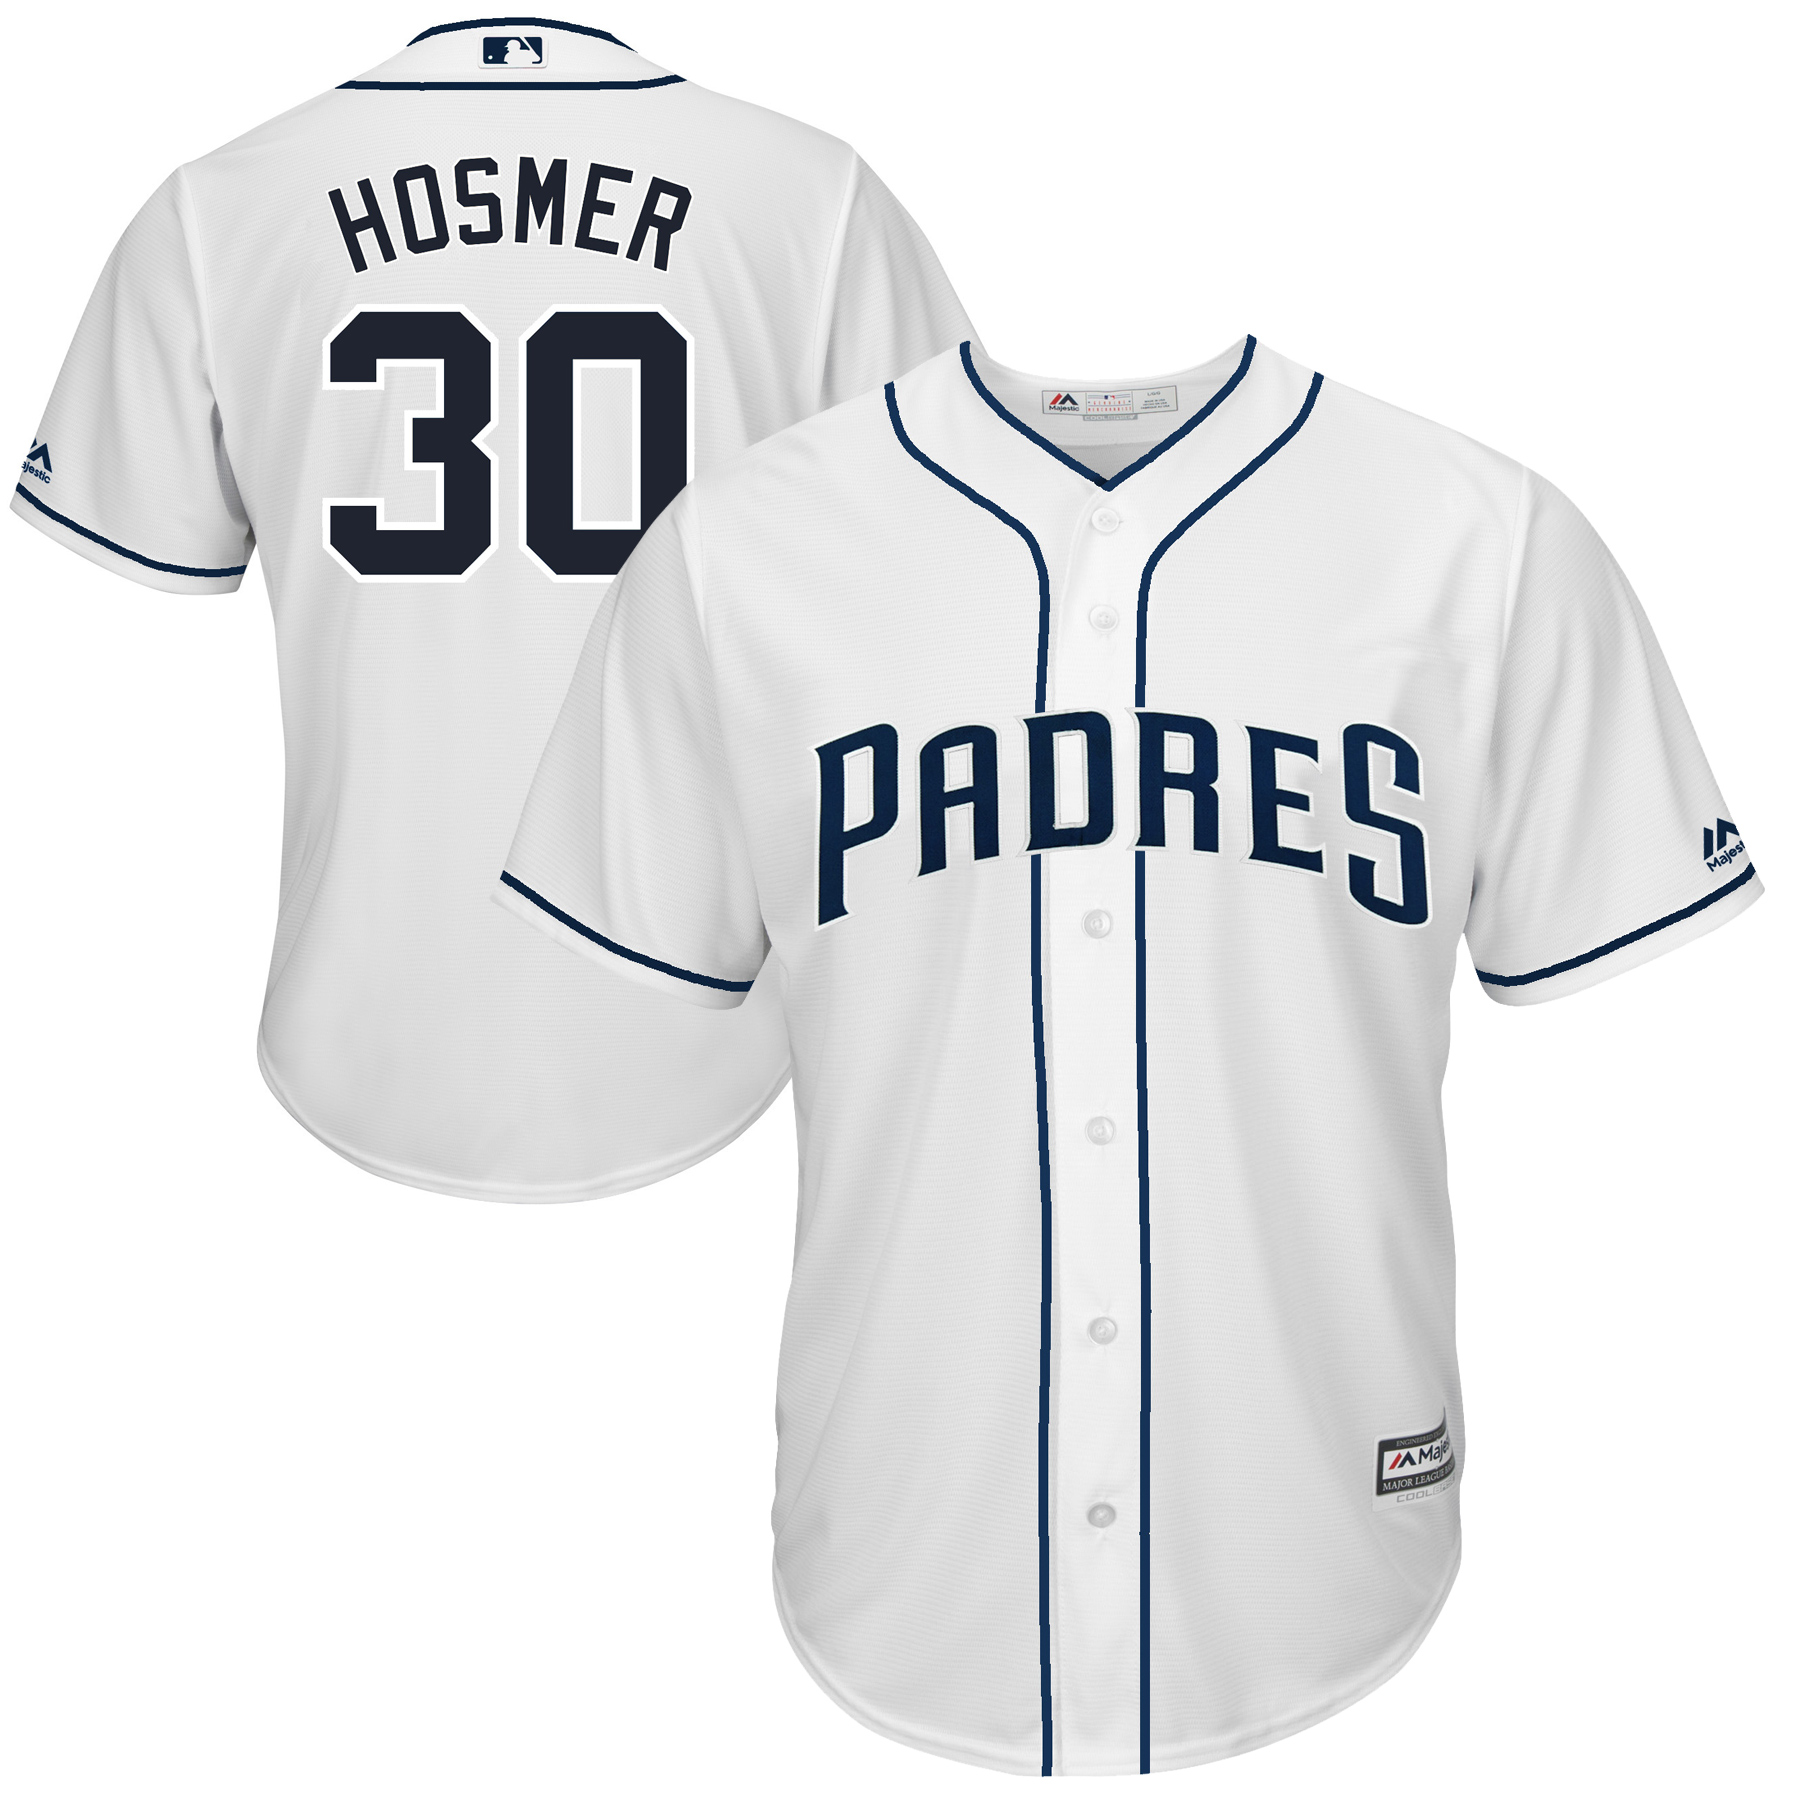 Eric Hosmer San Diego Padres Majestic Home Cool Base Player Replica Jersey - White